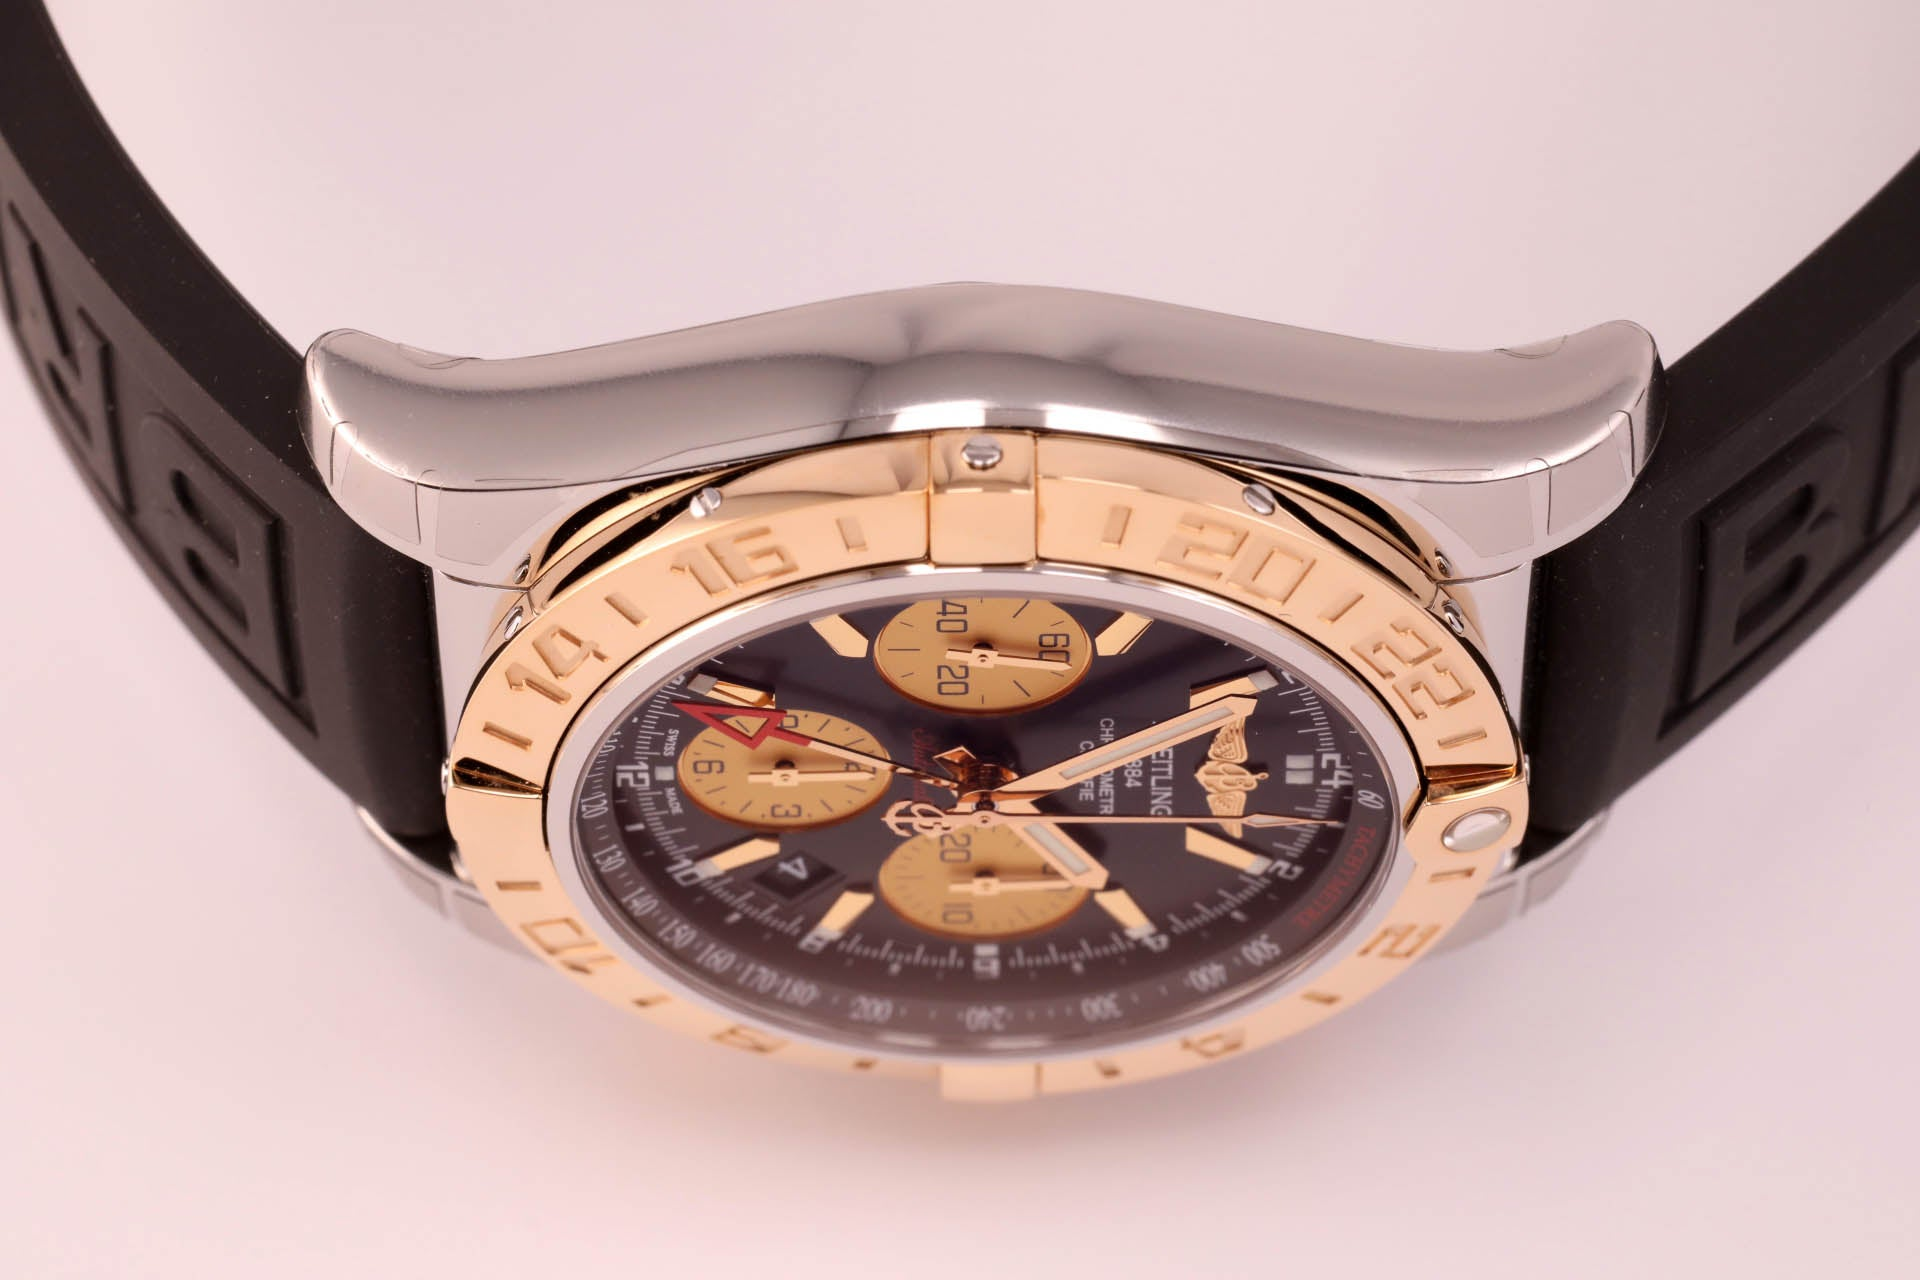 Breitling Chronomat 44 GMT 18kt gold/SS Black Dial, Ref. CB042012|BB86 on Diver Pro III Strap with Micro Adjustment Folding Buckle